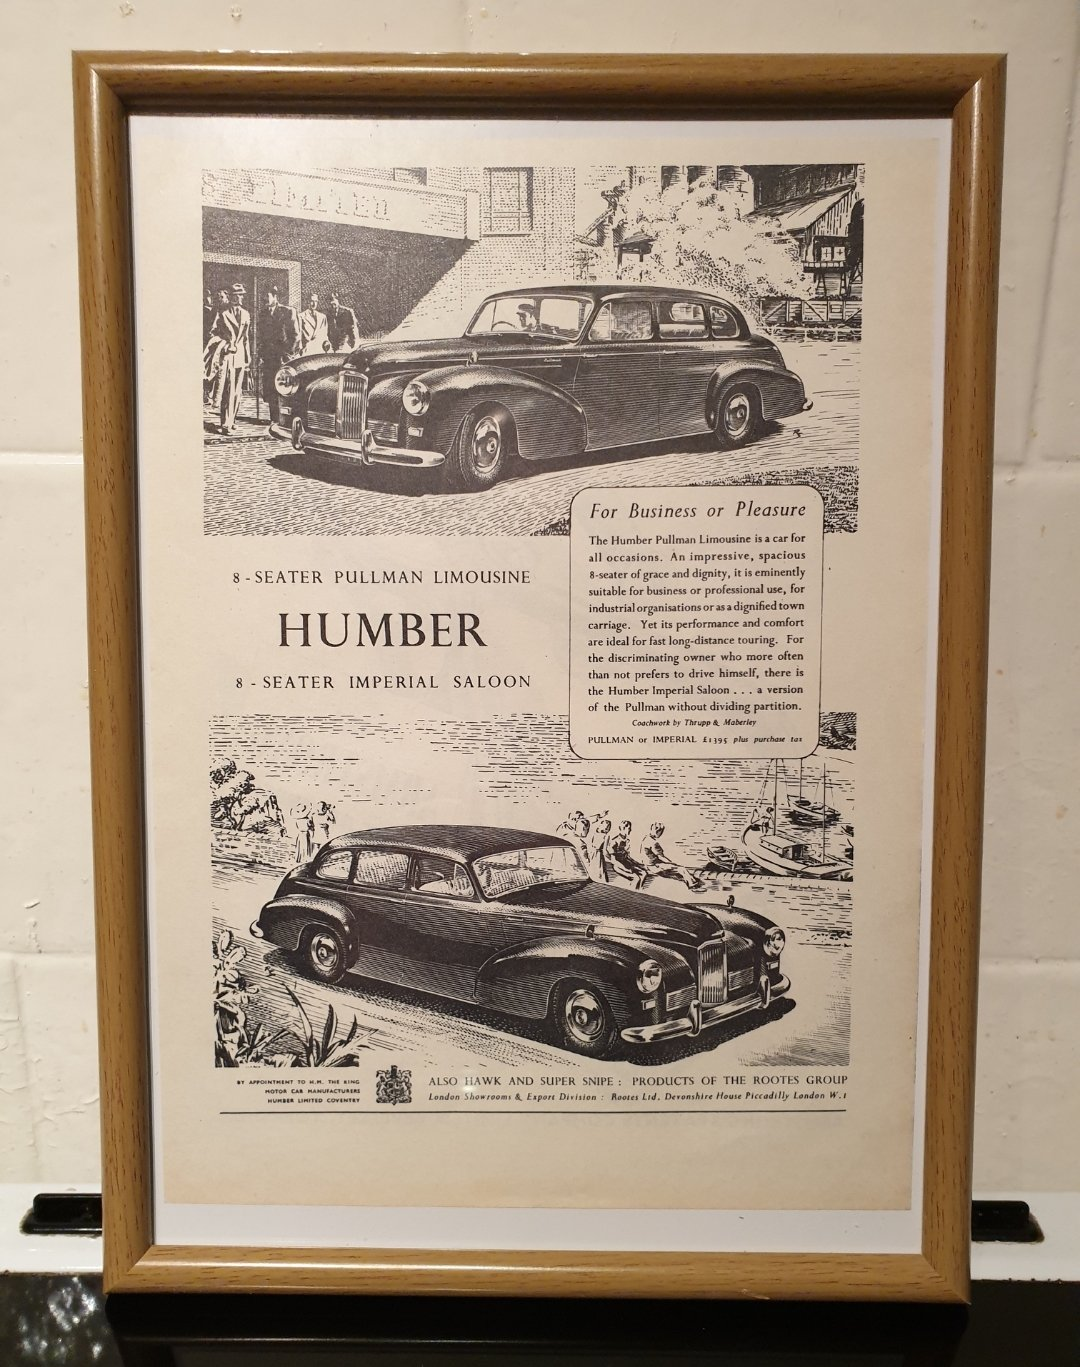 1951 Humber Limousine Framed Advert Original  For Sale (picture 1 of 2)